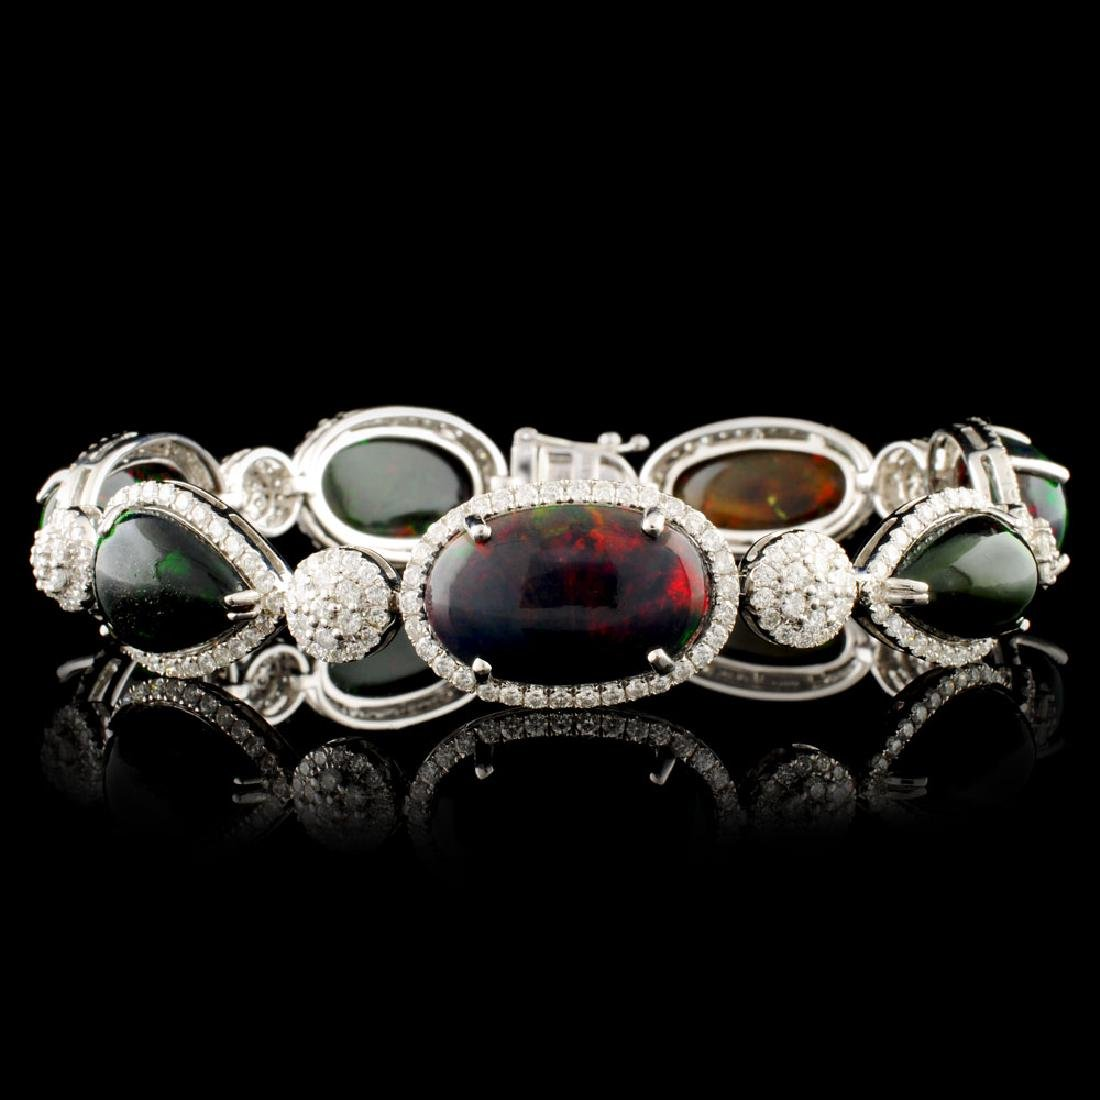 14K Gold 24.62ct Opal & 3.54ctw Diamond Bracelet